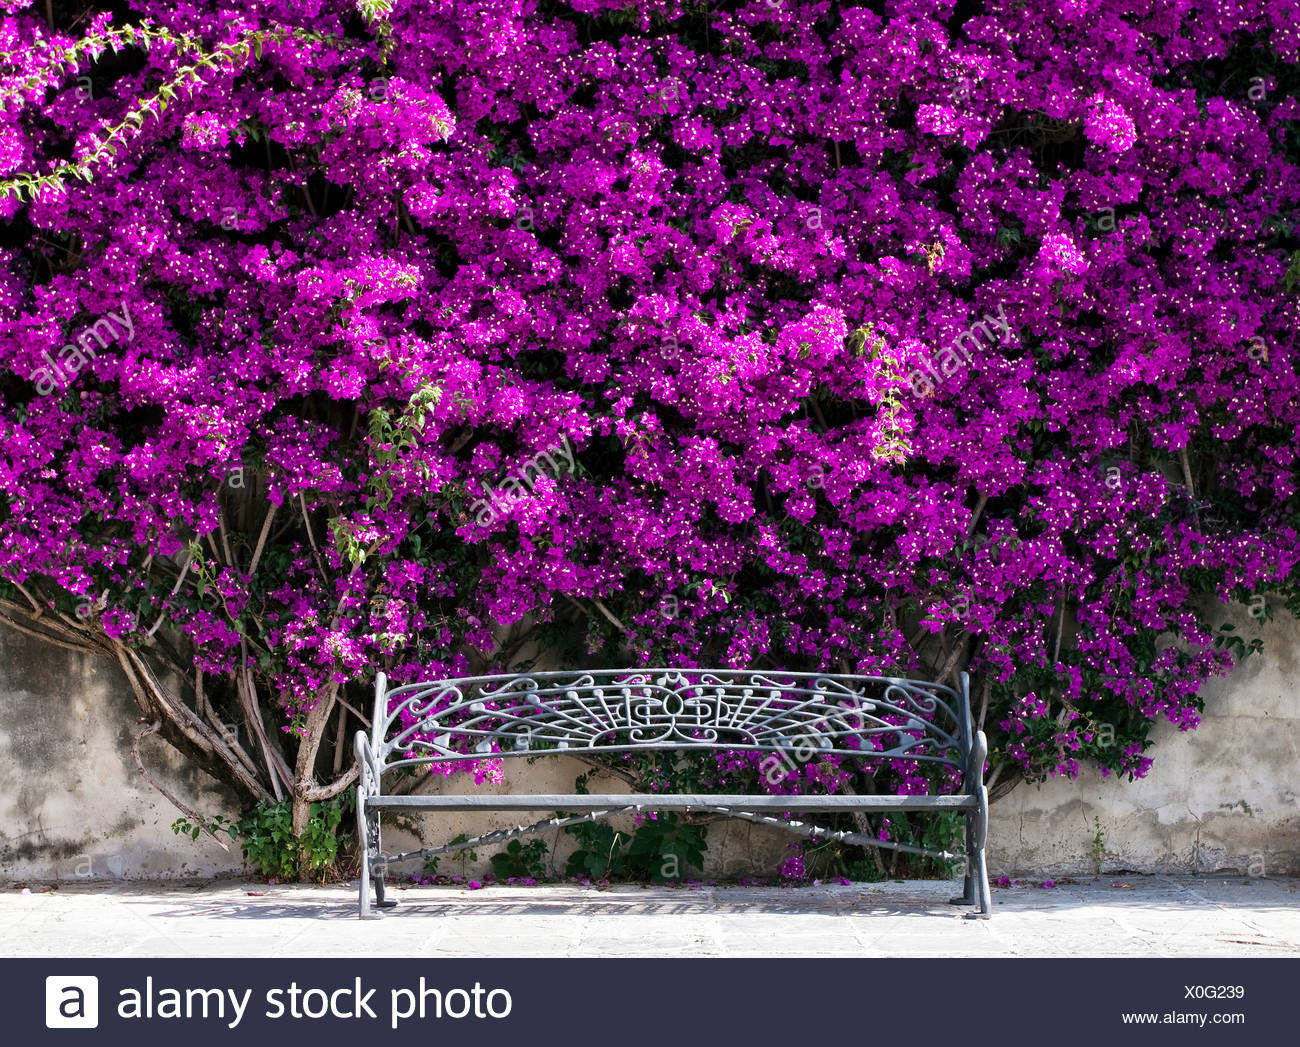 Bench under a bush of Bougainville (Bougainvillea) - Stock Image